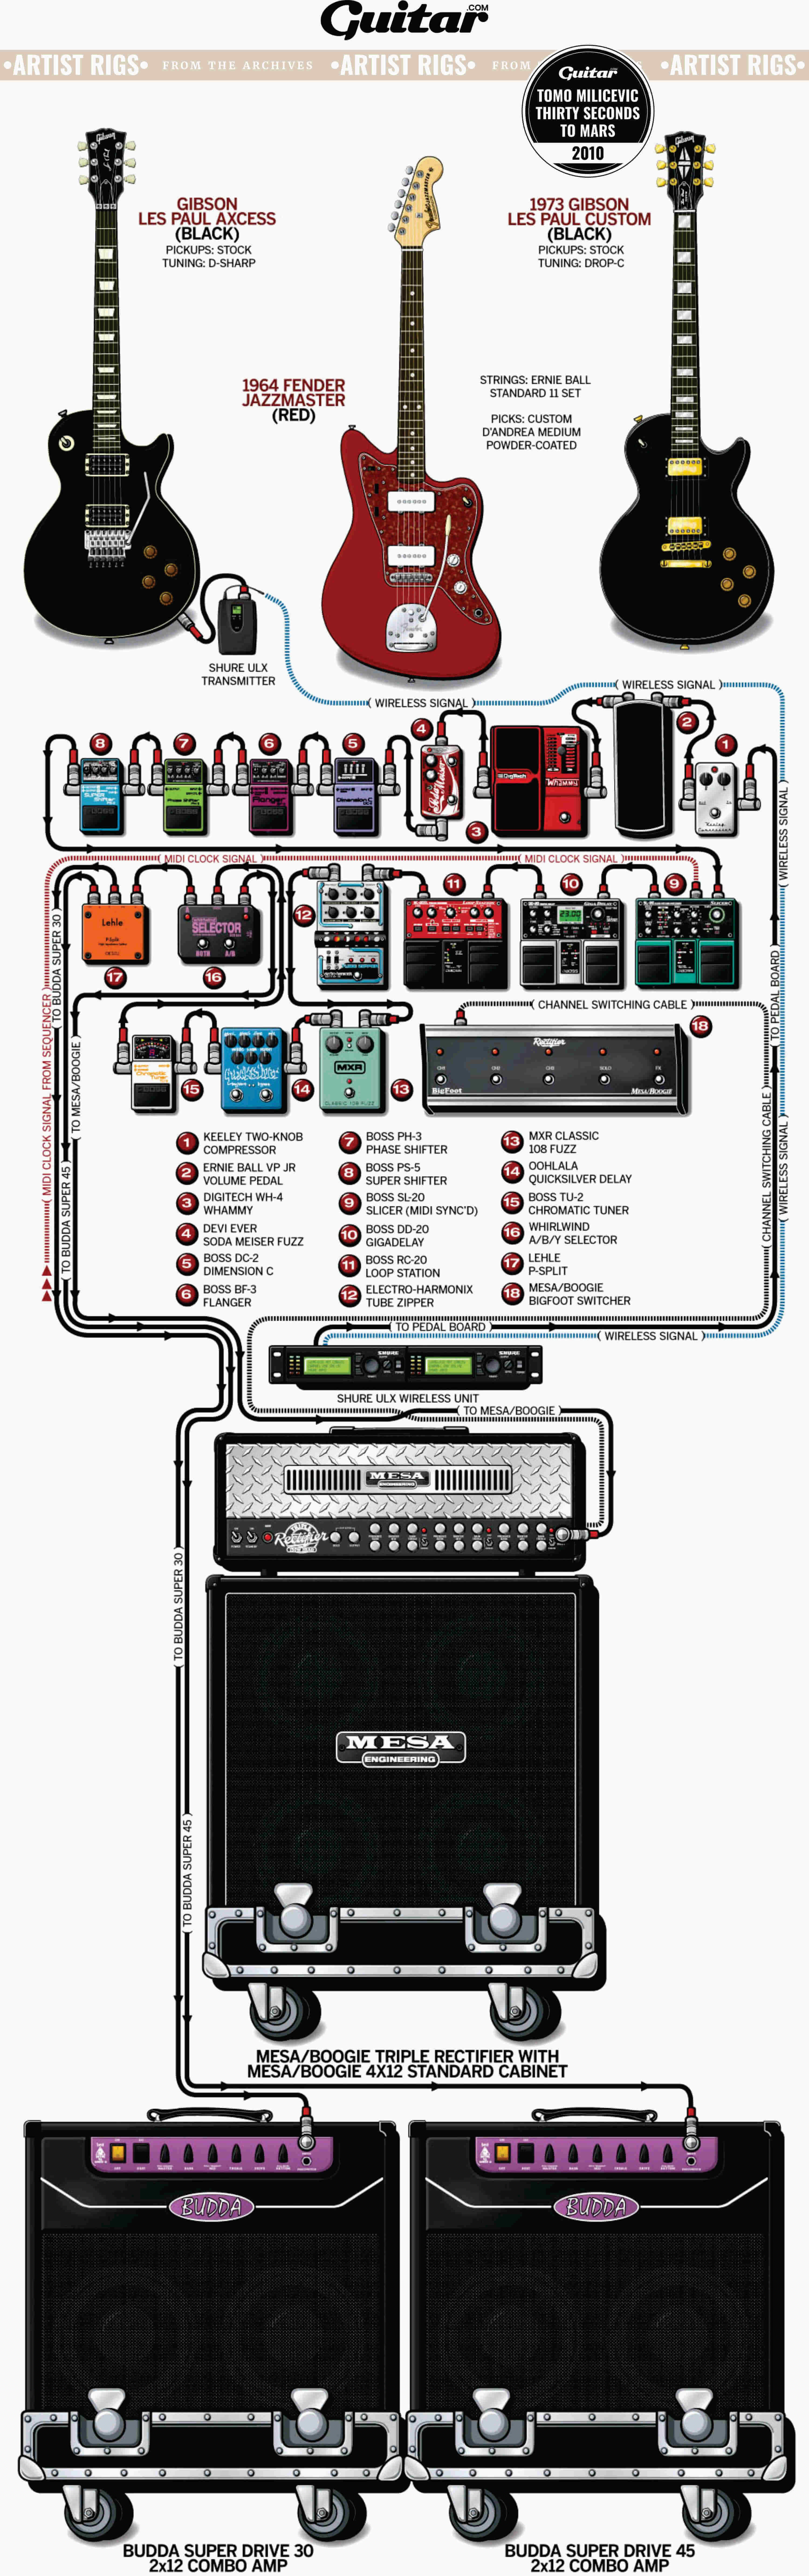 Rig Diagram: Tomo Milicevic, Thirty Seconds To Mars (2010)